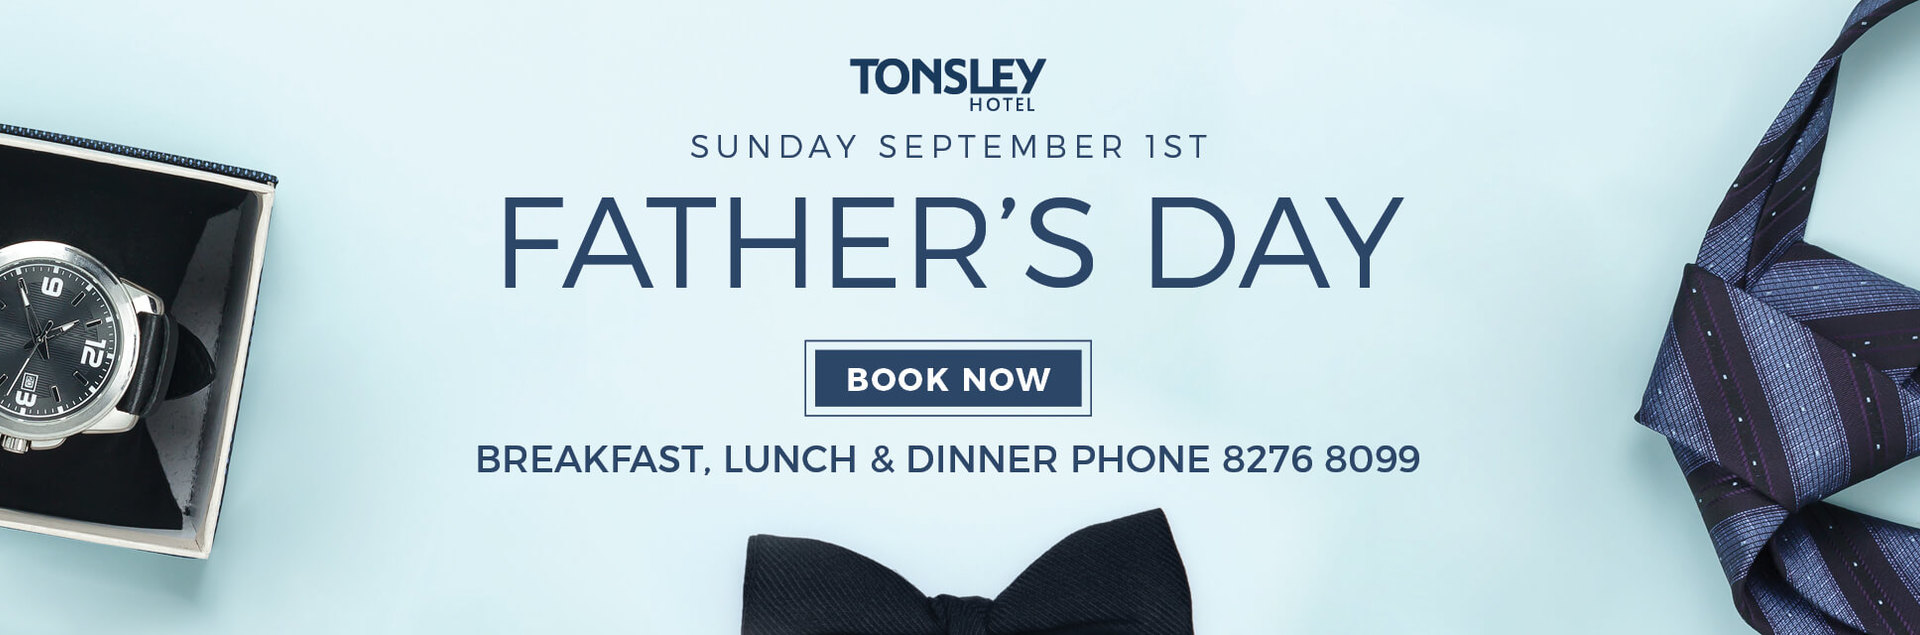 The-Tonsley-Hotel-Restaurant-Adelaide-Accommodation-Function-Rooms-Music-Fathers-Day-2019-slider.jpg